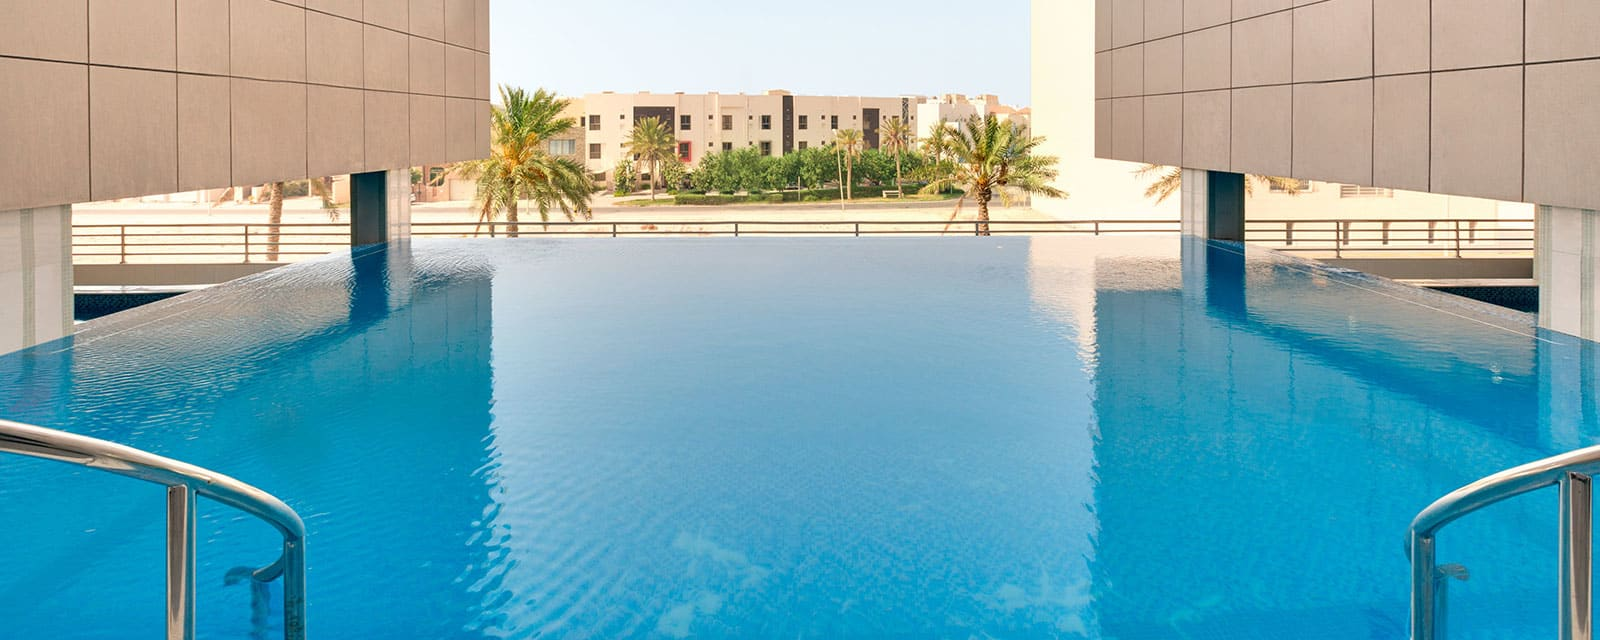 Ramada Hotel & Suites by Wyndham Amwaj Islands Manama